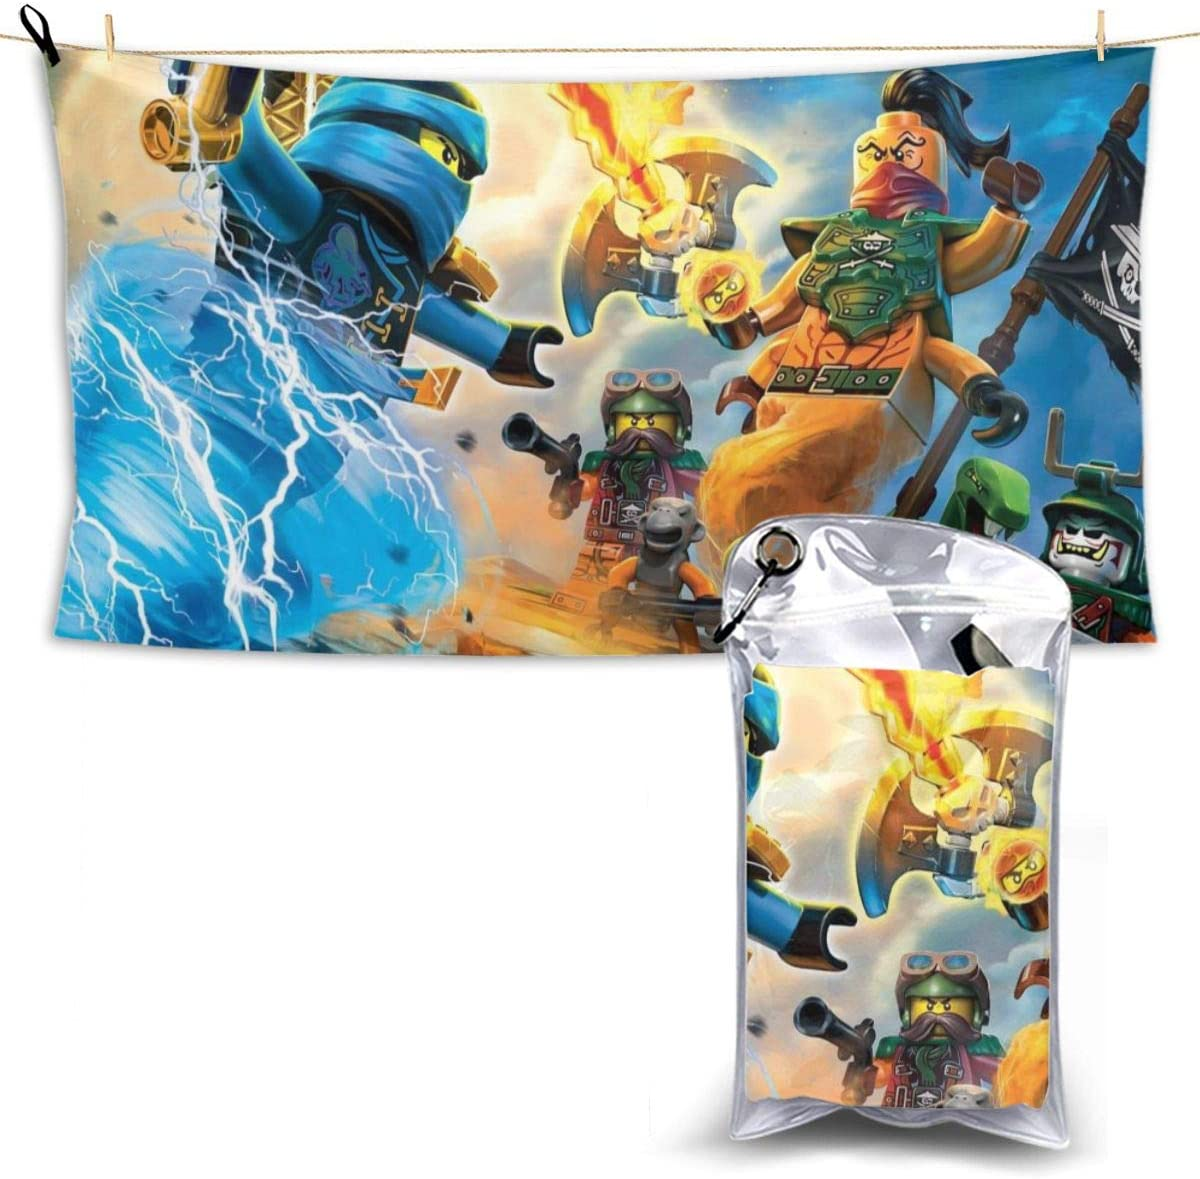 Amazon Com Qpoizzahi Ninjago Oversized Quick Drying Microfiber Beach Travel Towel 28 7 Inches X 51 Inches Lightweight Quick Drying Travel Towel Beach Swimming Swimming Pool Hiking Camping Home Kitchen Performing the inverse calculation of the relationship between units, we obtain that 1 foot is 0.23529412 times 51 inches. amazon com